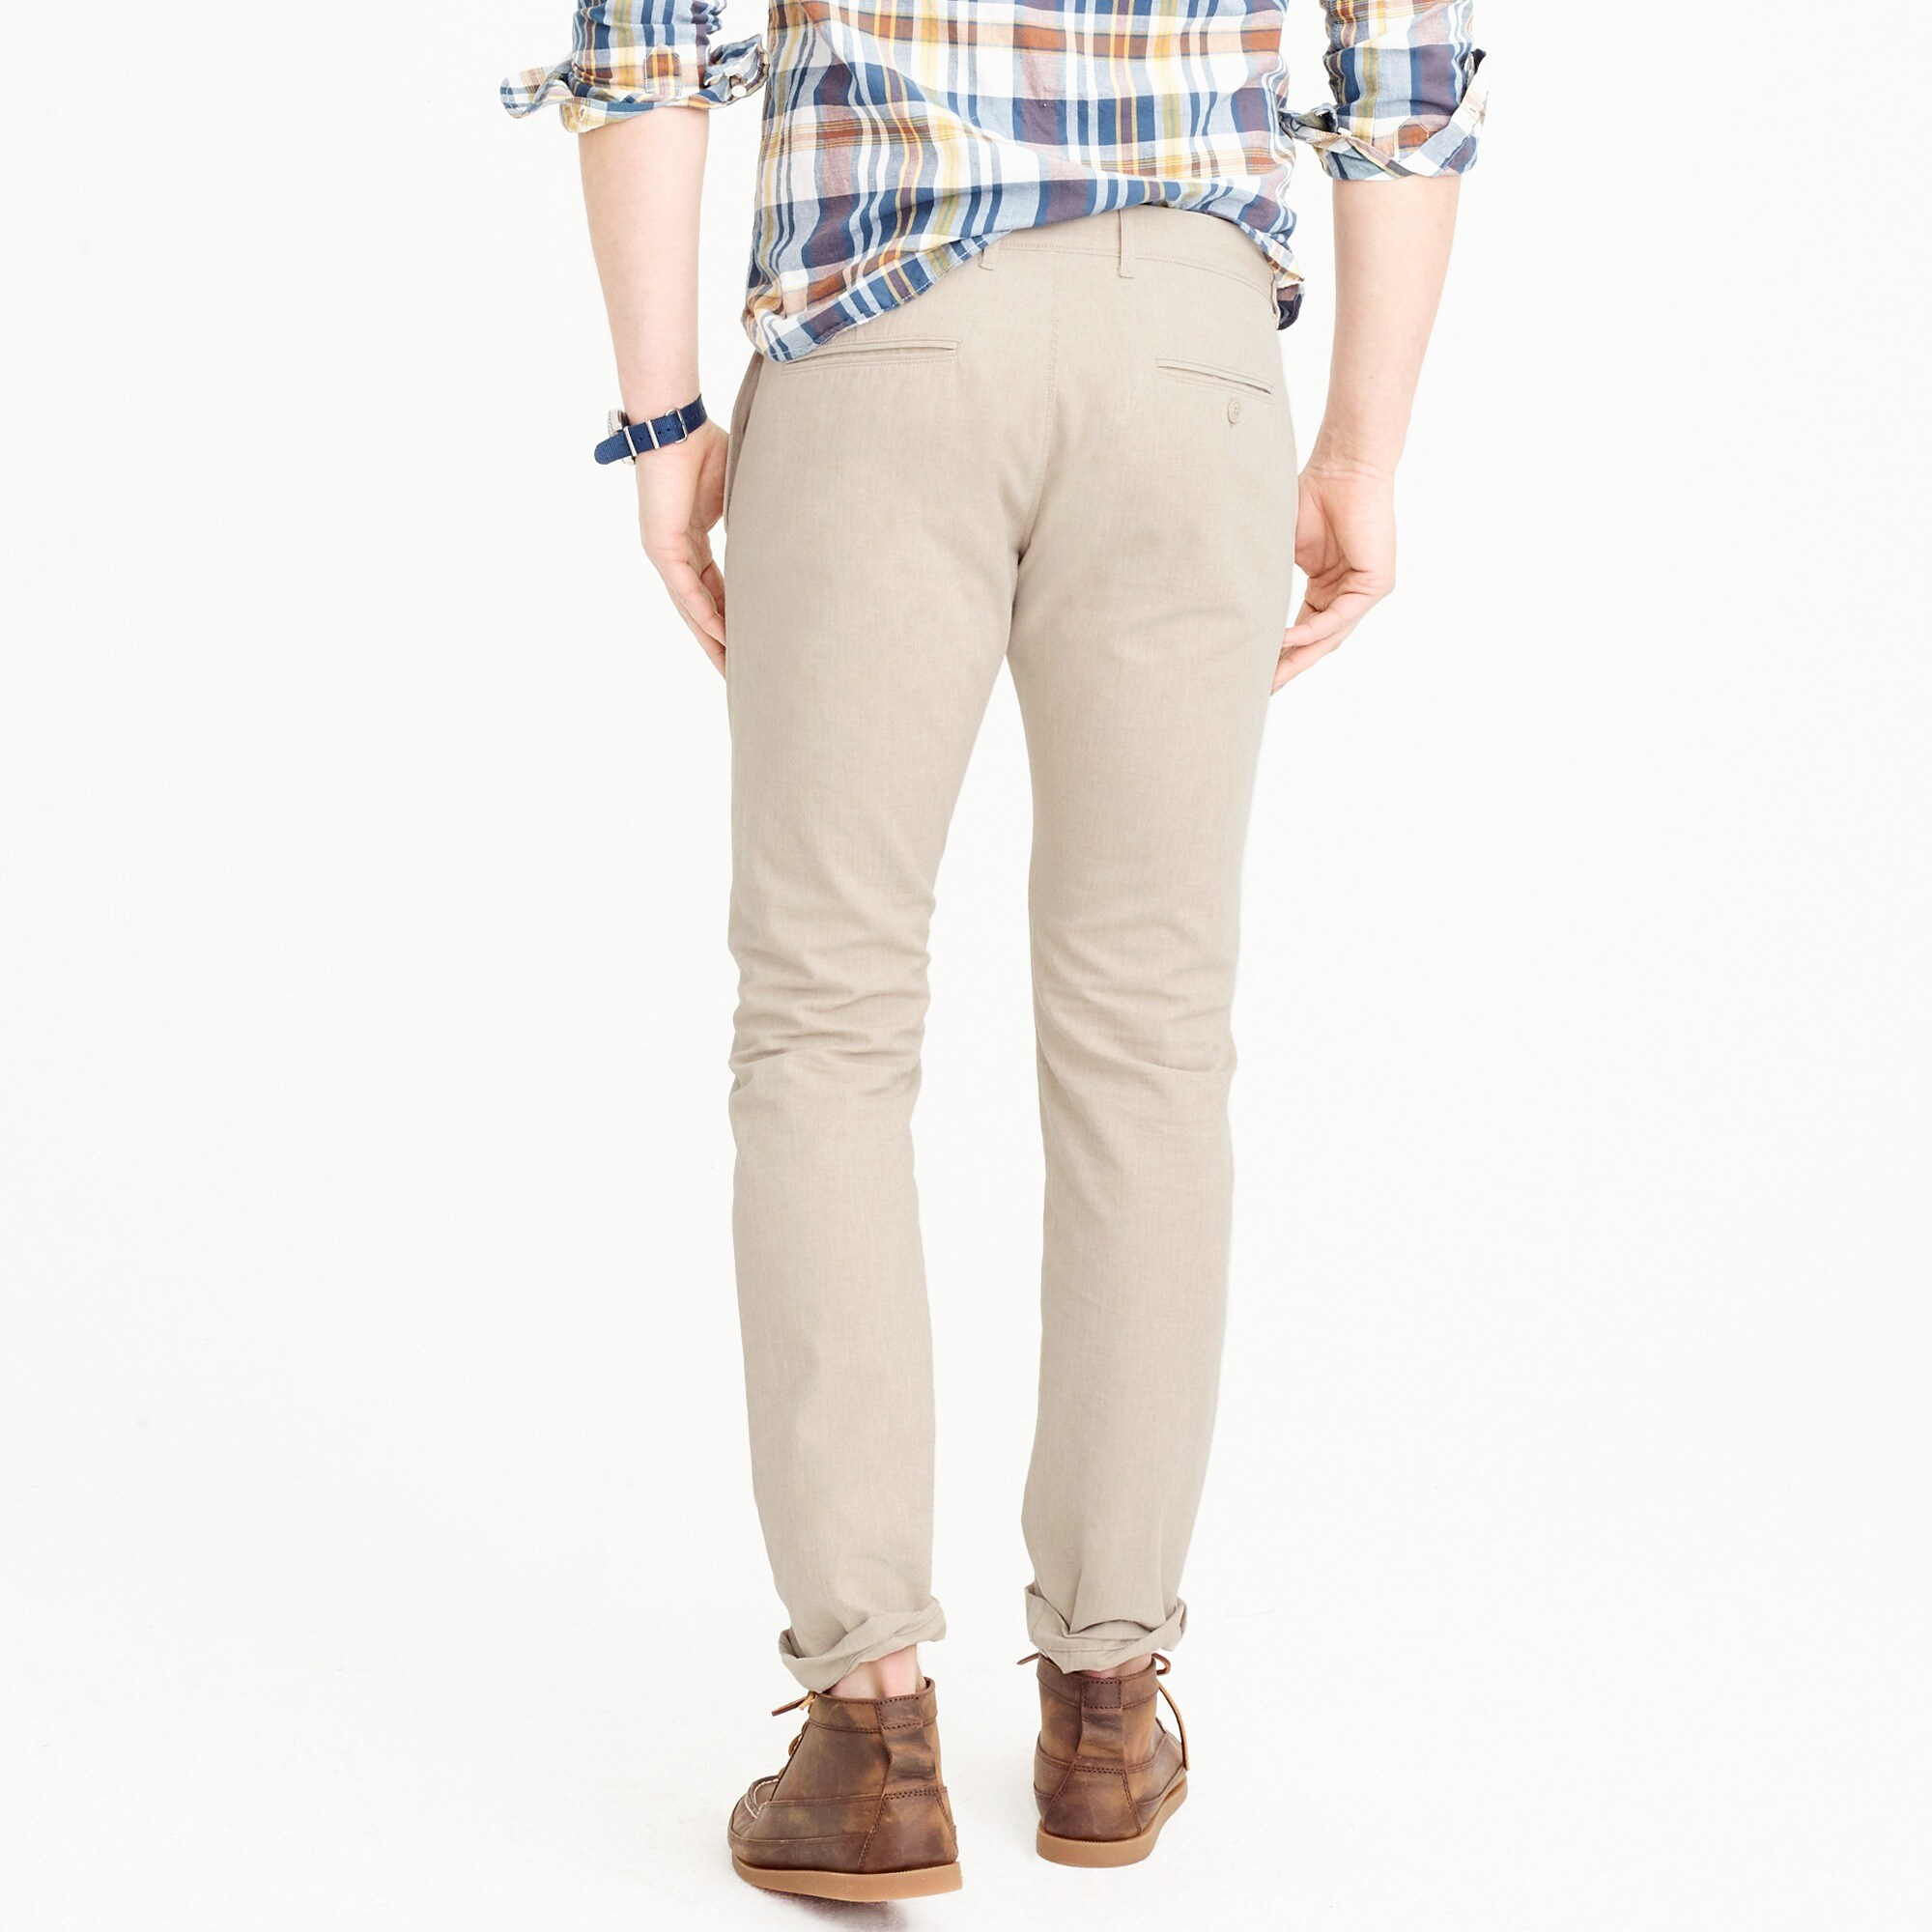 Image 3 for 484 Slim-fit chino in stretch herringbone